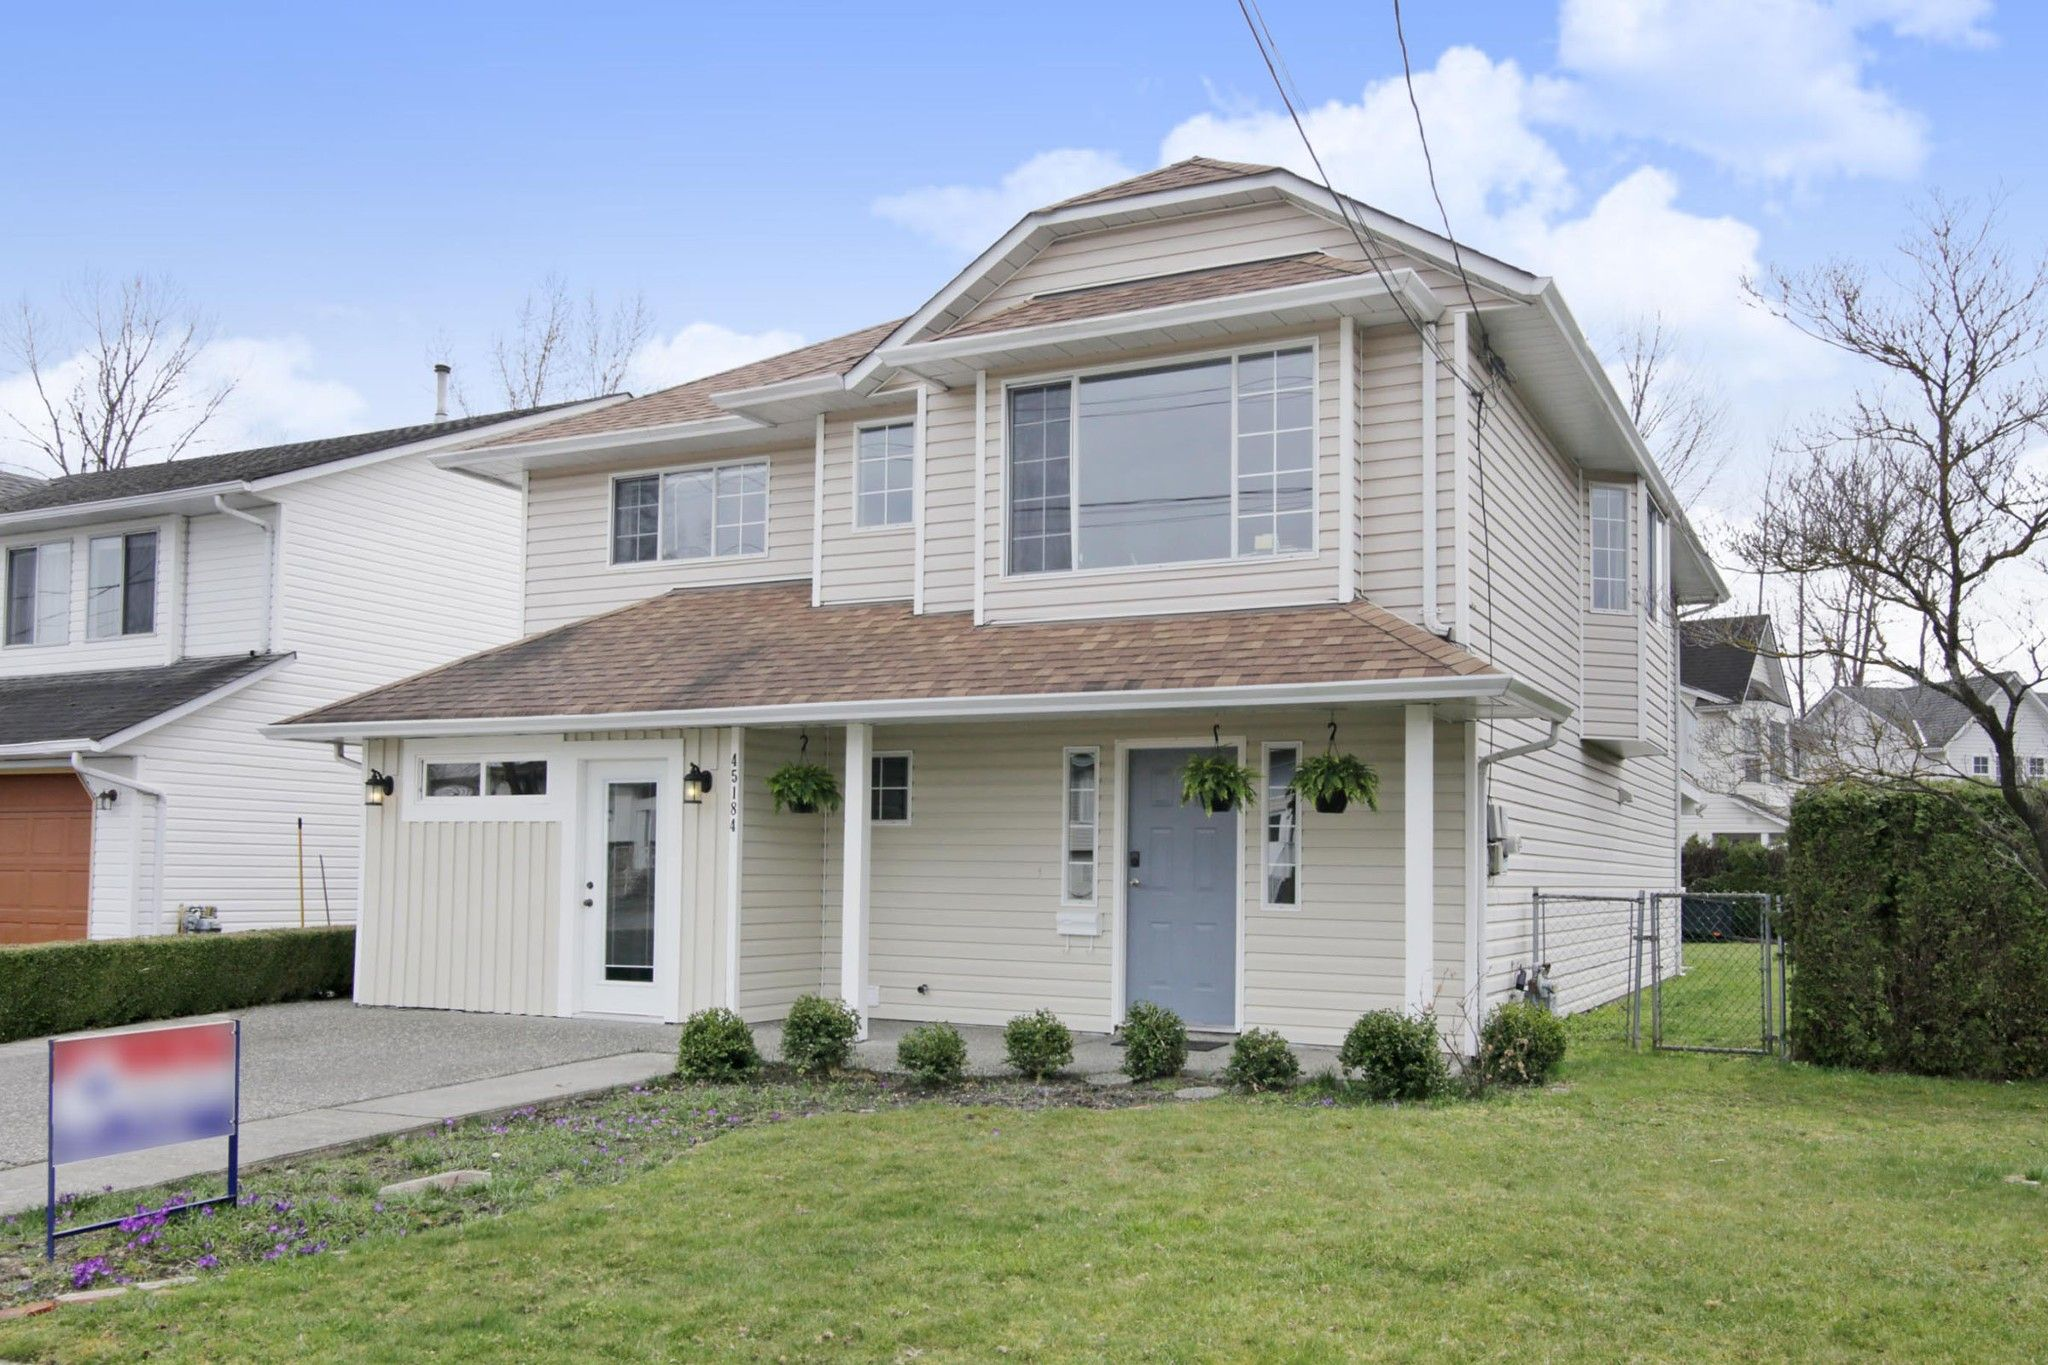 Main Photo: 45184 DEANS Avenue in Chilliwack: Chilliwack W Young-Well House for sale : MLS®# R2364570